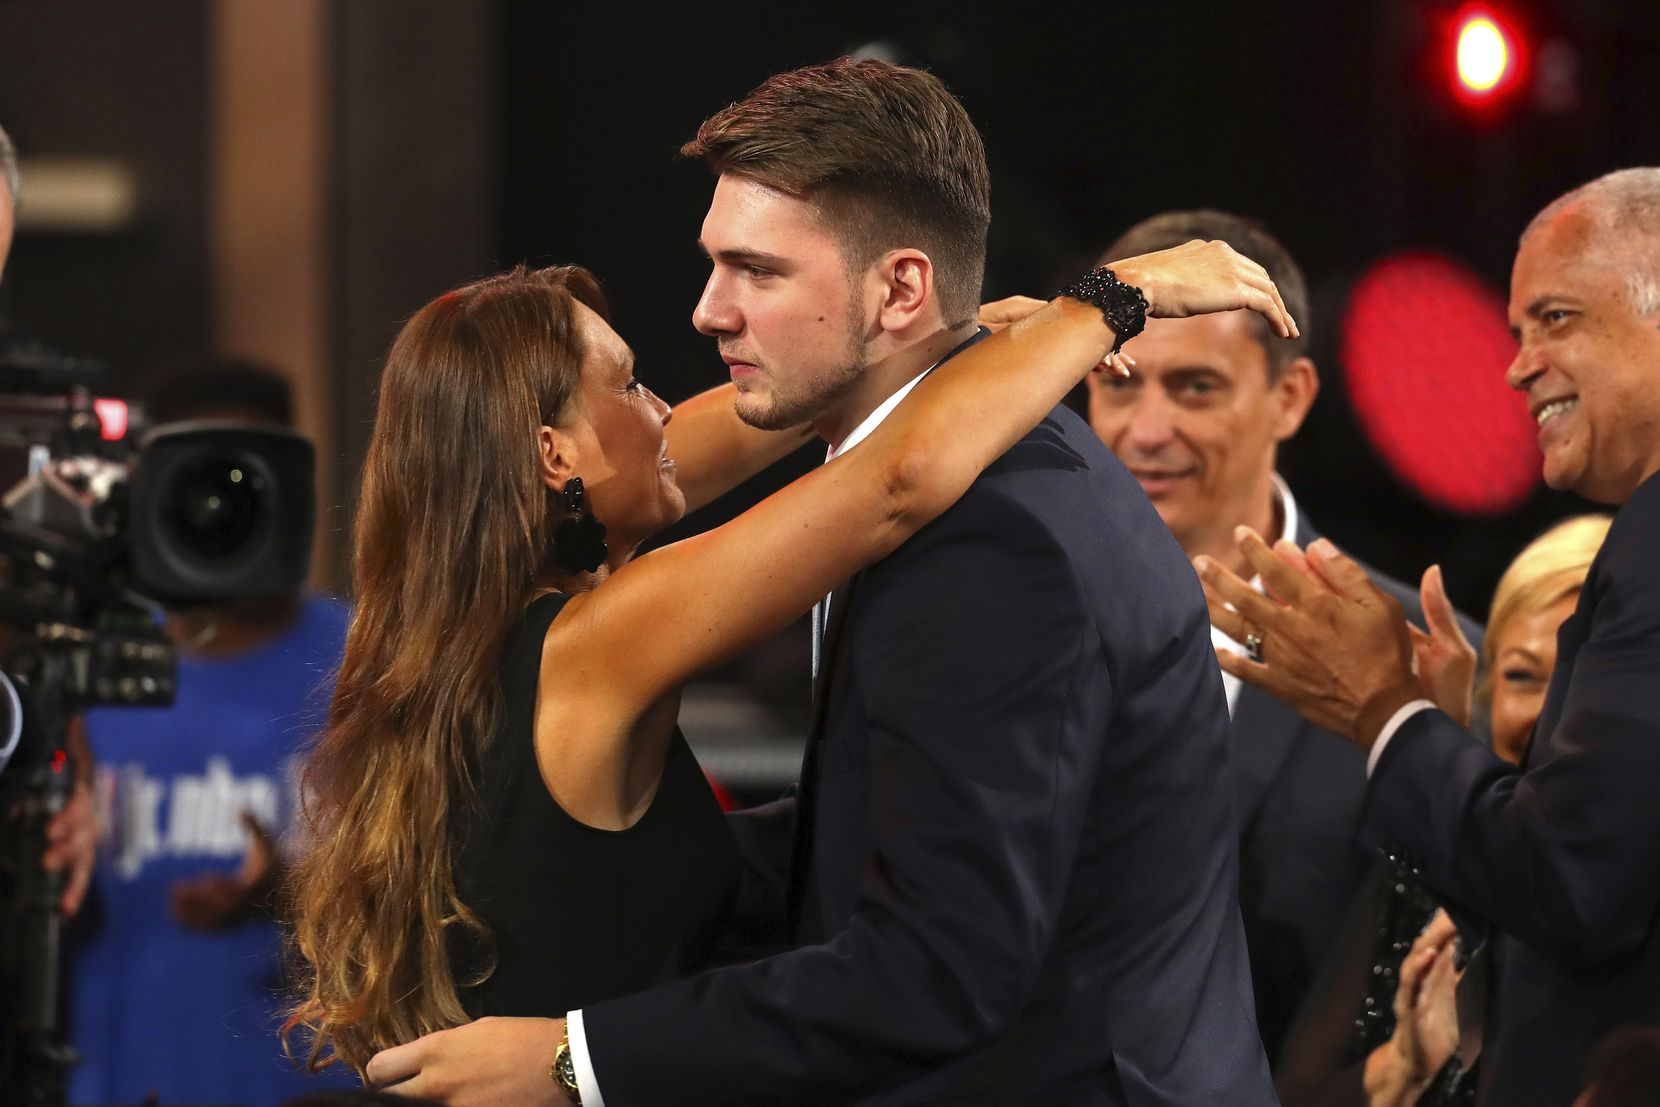 NEW YORK, NY - JUNE 21:  Luka Doncic hugs his mother, Mirjam Poterbin, after being drafted third overall by the Atlanta Hawks during the 2018 NBA Draft at the Barclays Center on June 21, 2018 in the Brooklyn borough of New York City. (Photo by Mike Stobe/Getty Images)